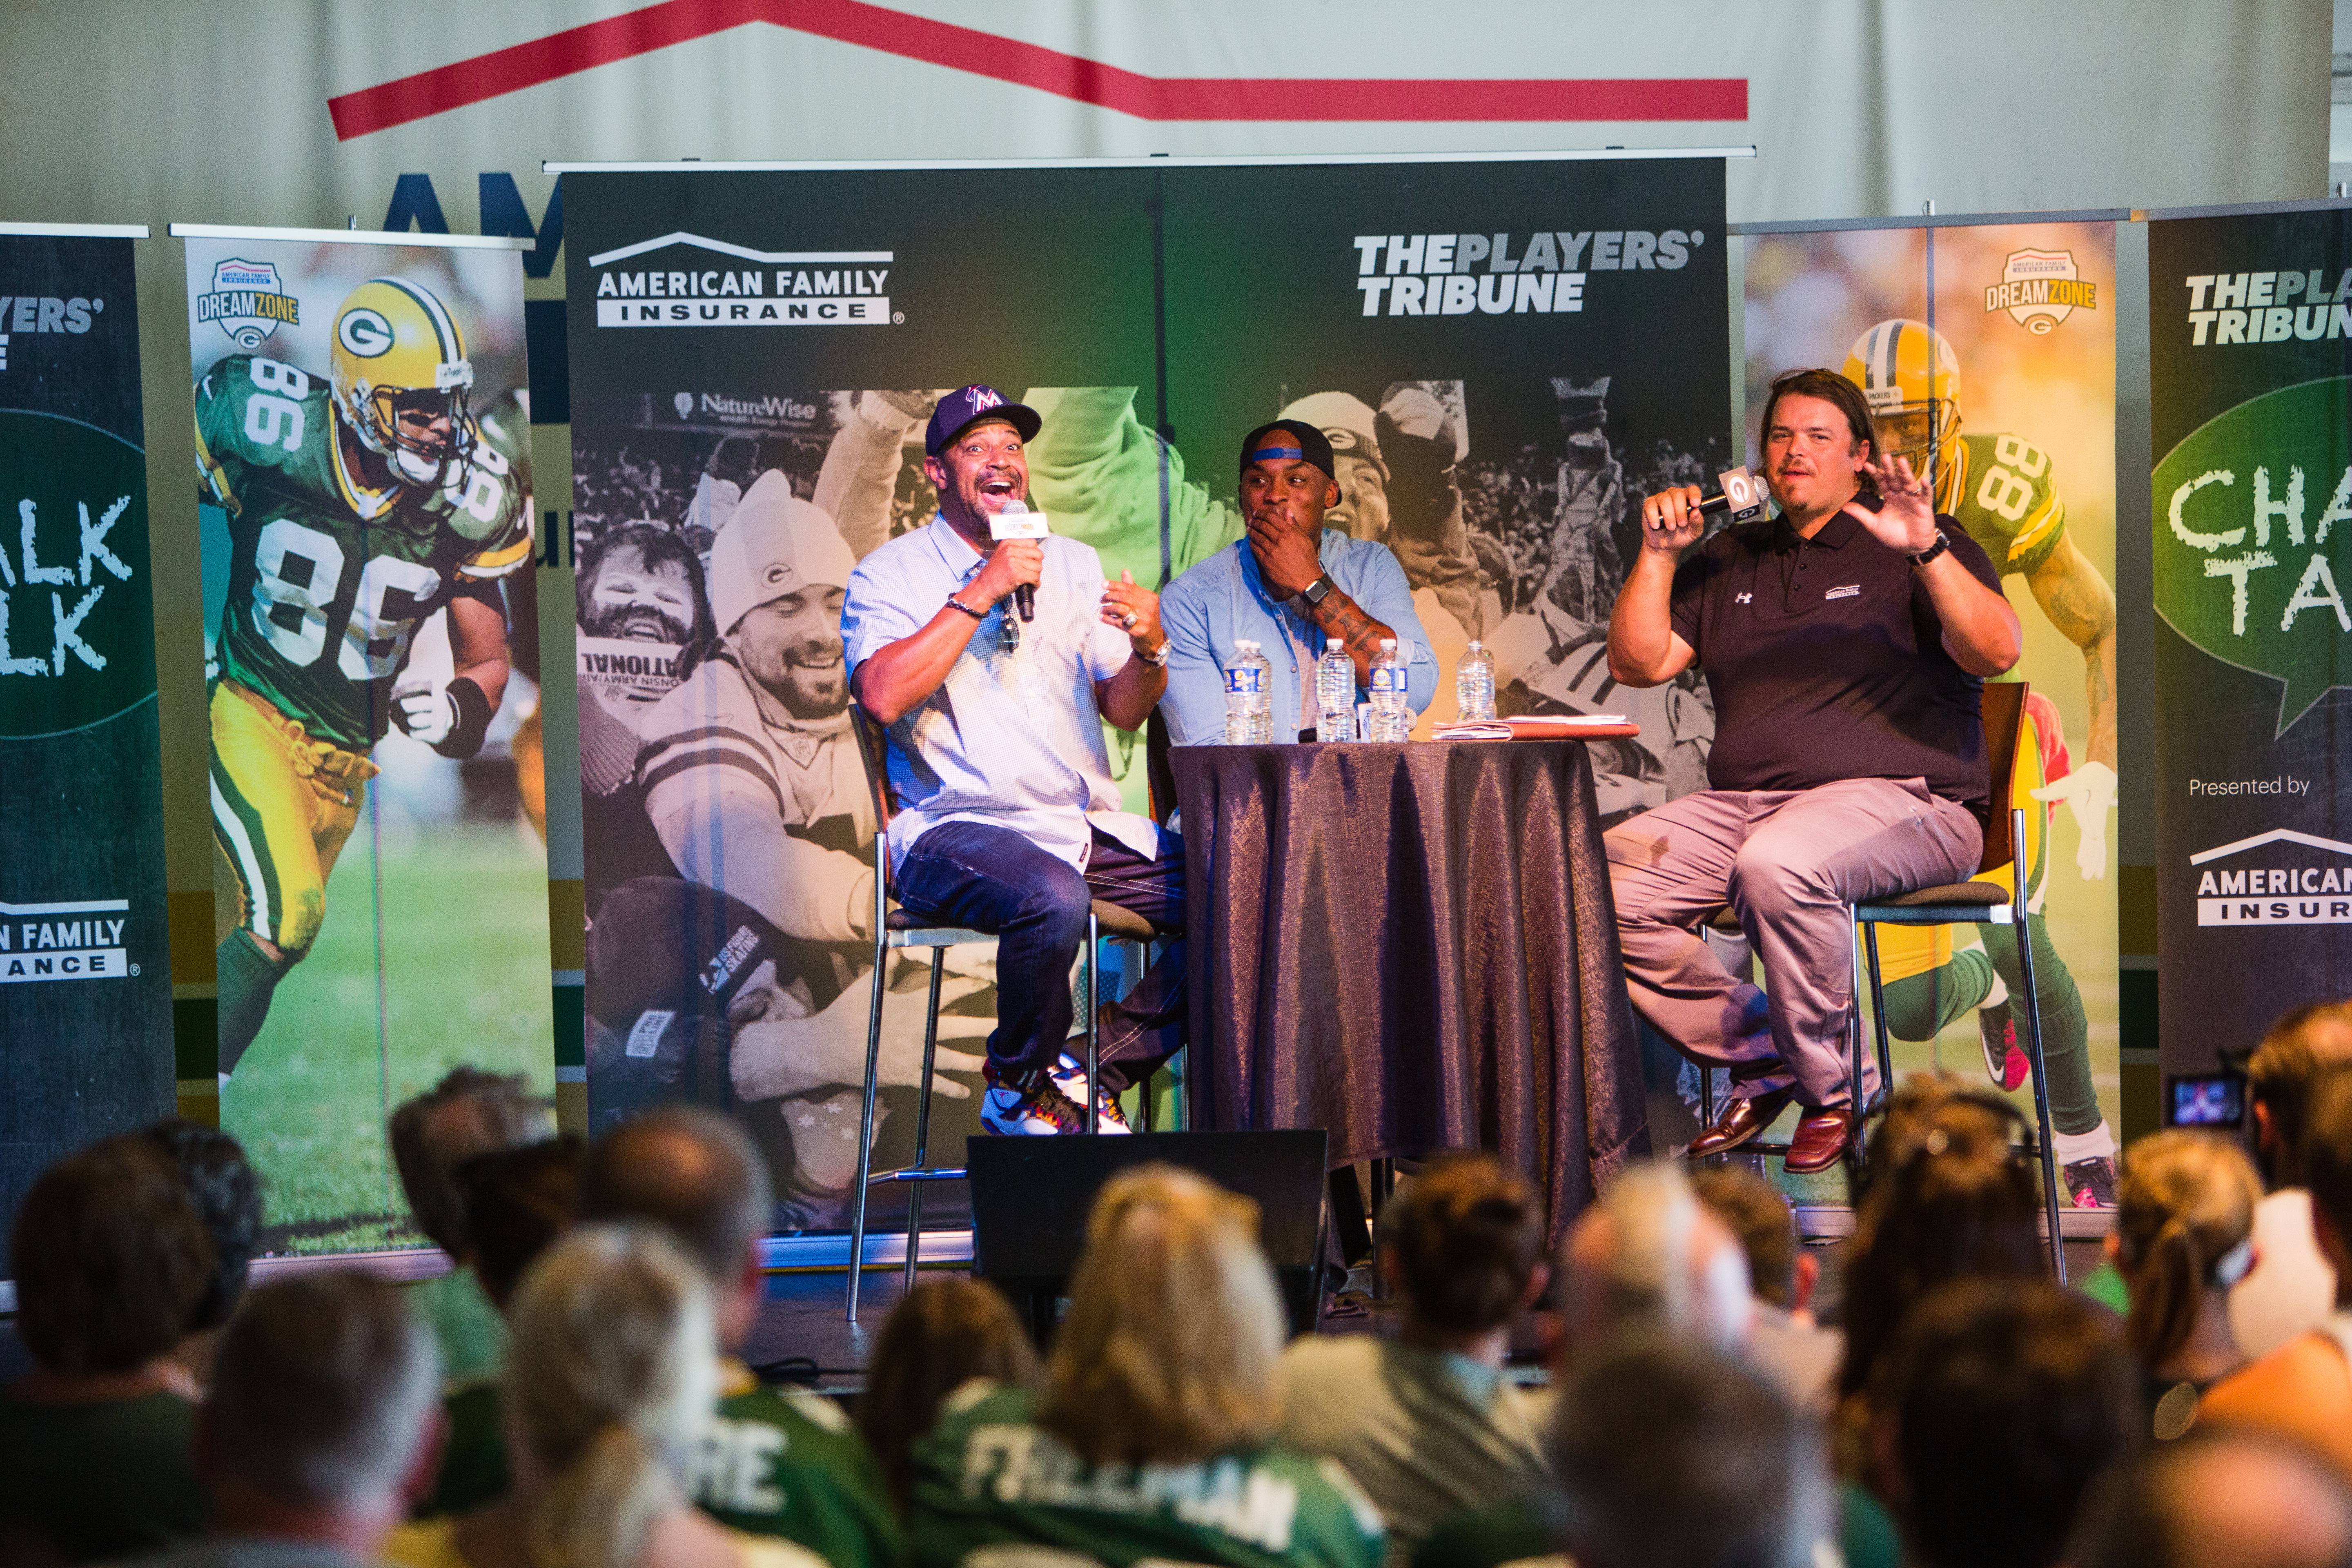 inside the American Family Insurance Dream Zone outside of Lambeau Field in Green Bay, WI on July 30, 2016. (Photo by Sam Maller/The Players' Tribune)